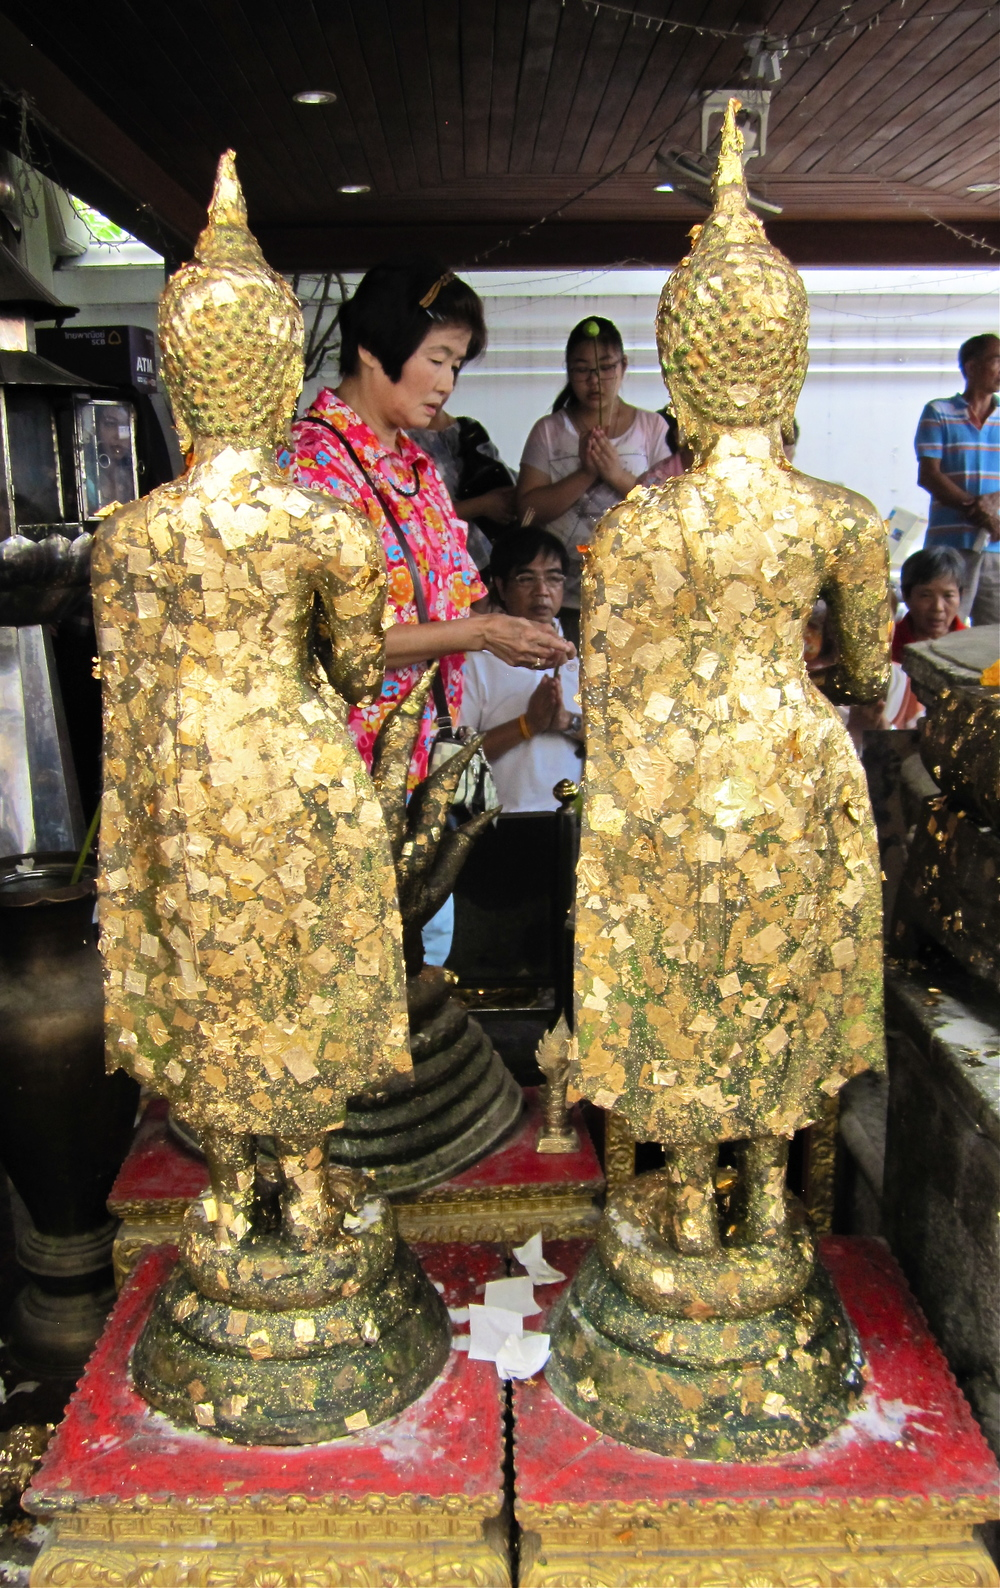 Pieces of gold leaf are placed on stone Buddhas at Wat Pho in Bangkok, Thailand